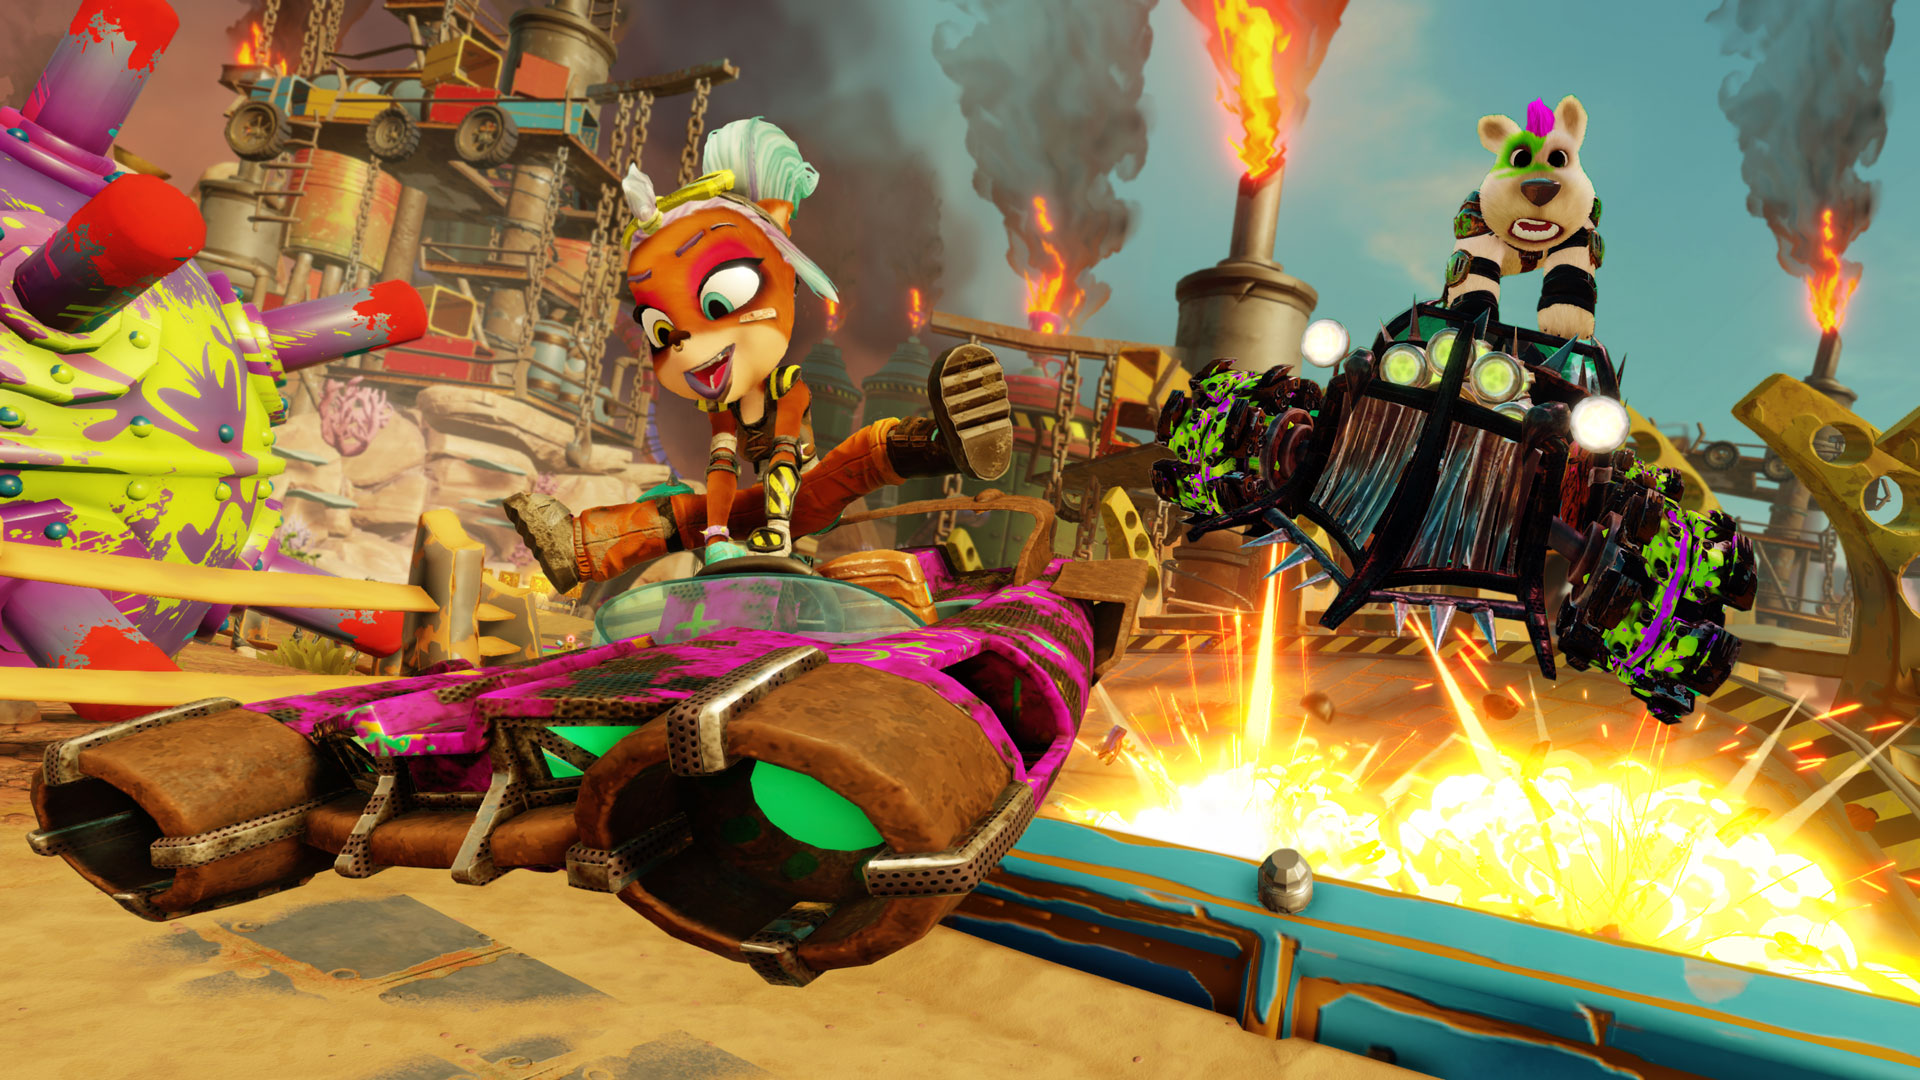 crash team racing update 1.18